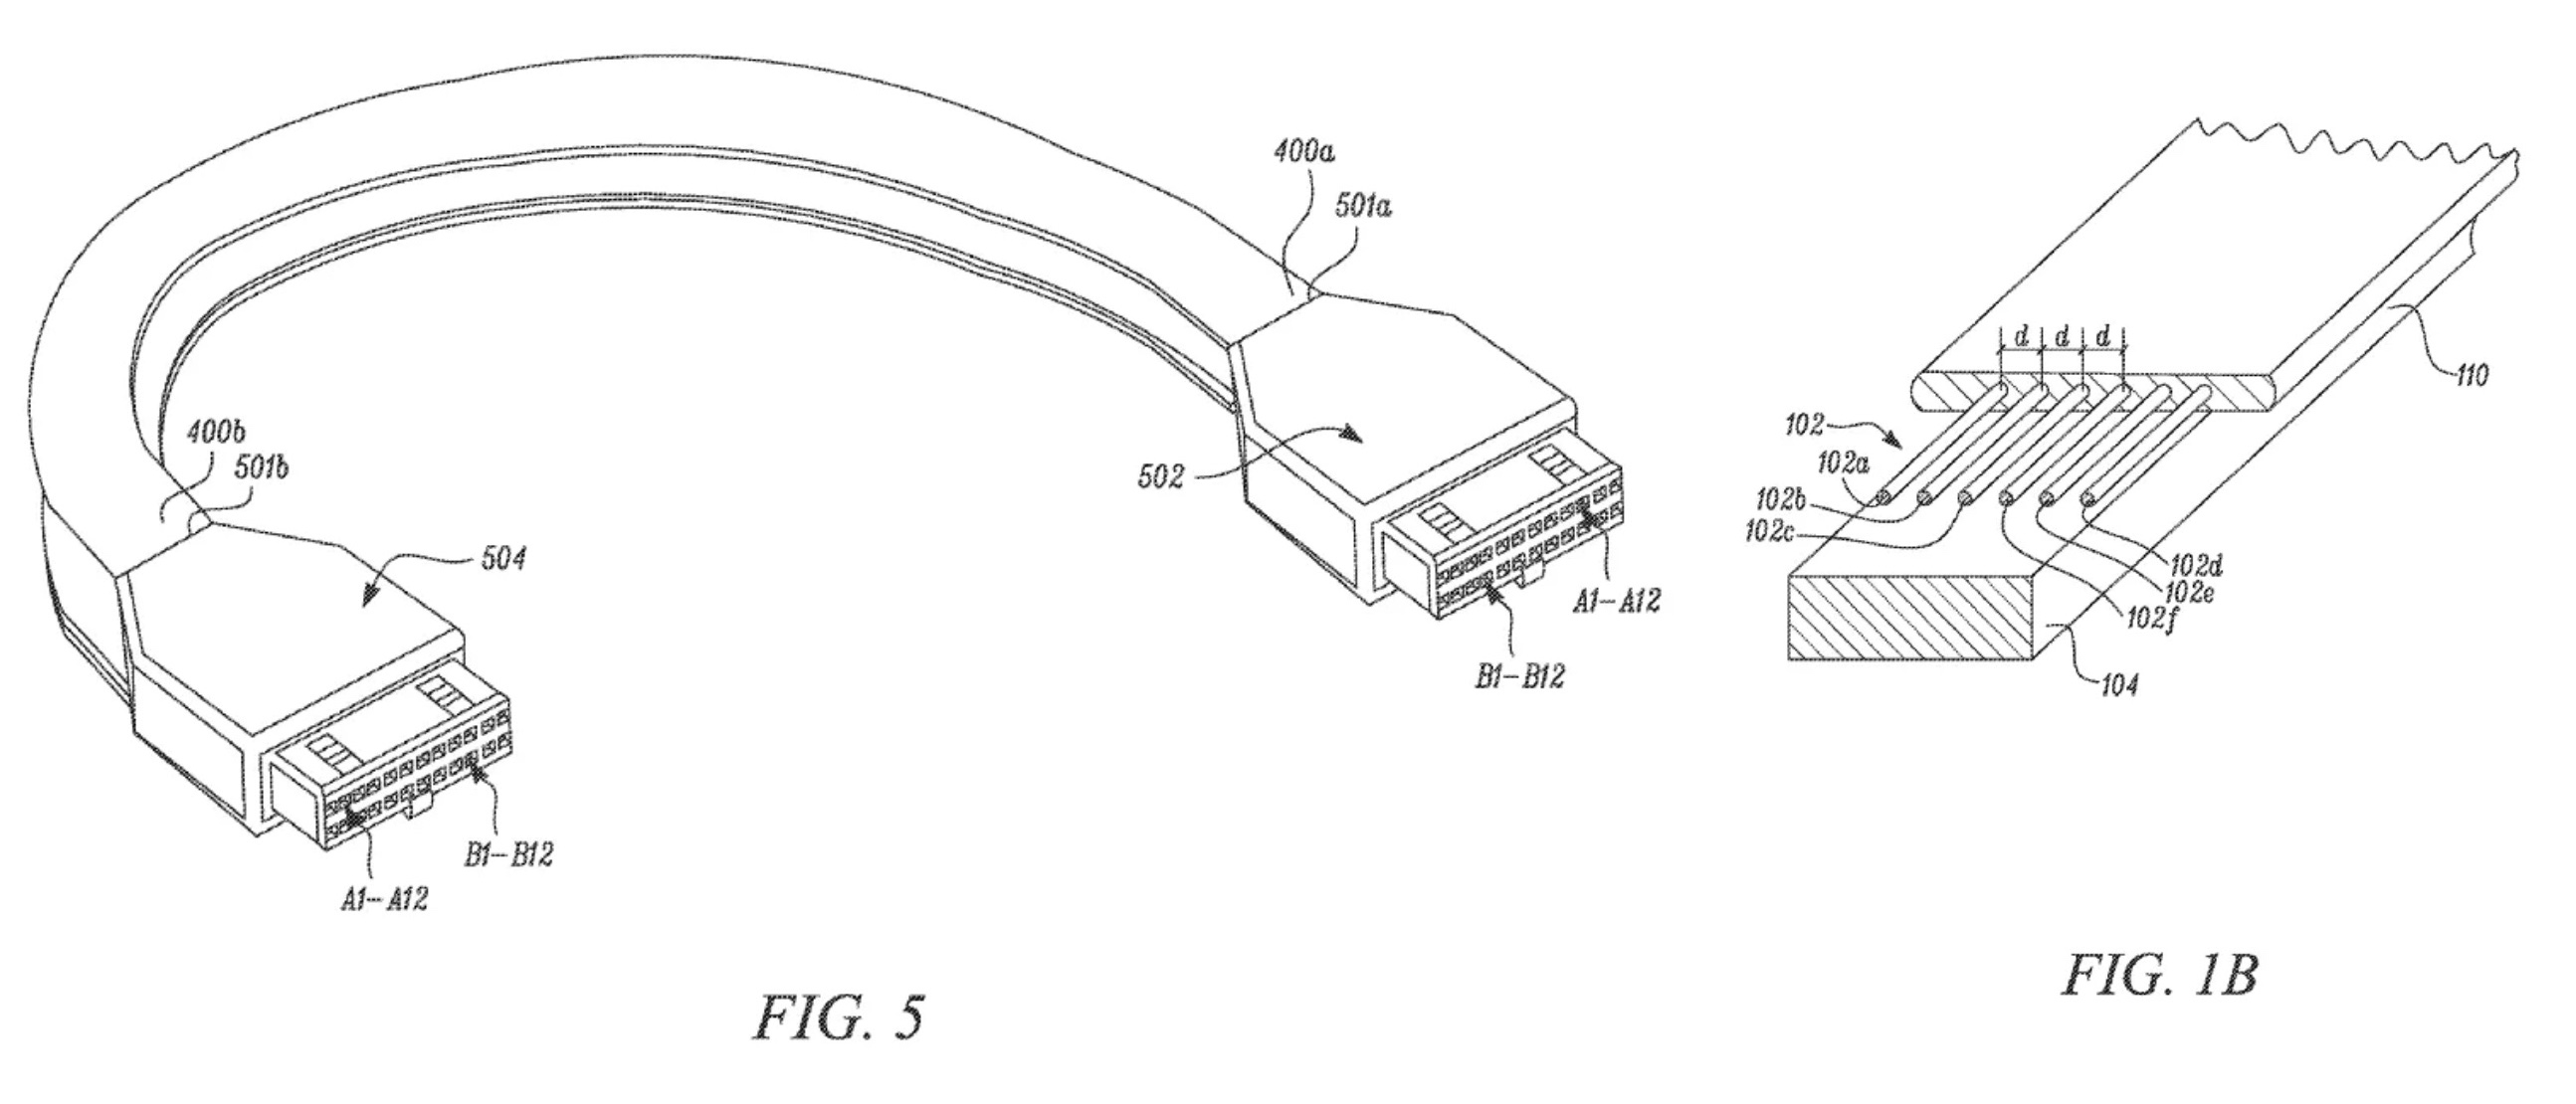 Tesla patents new type of cable easier to manipulate by